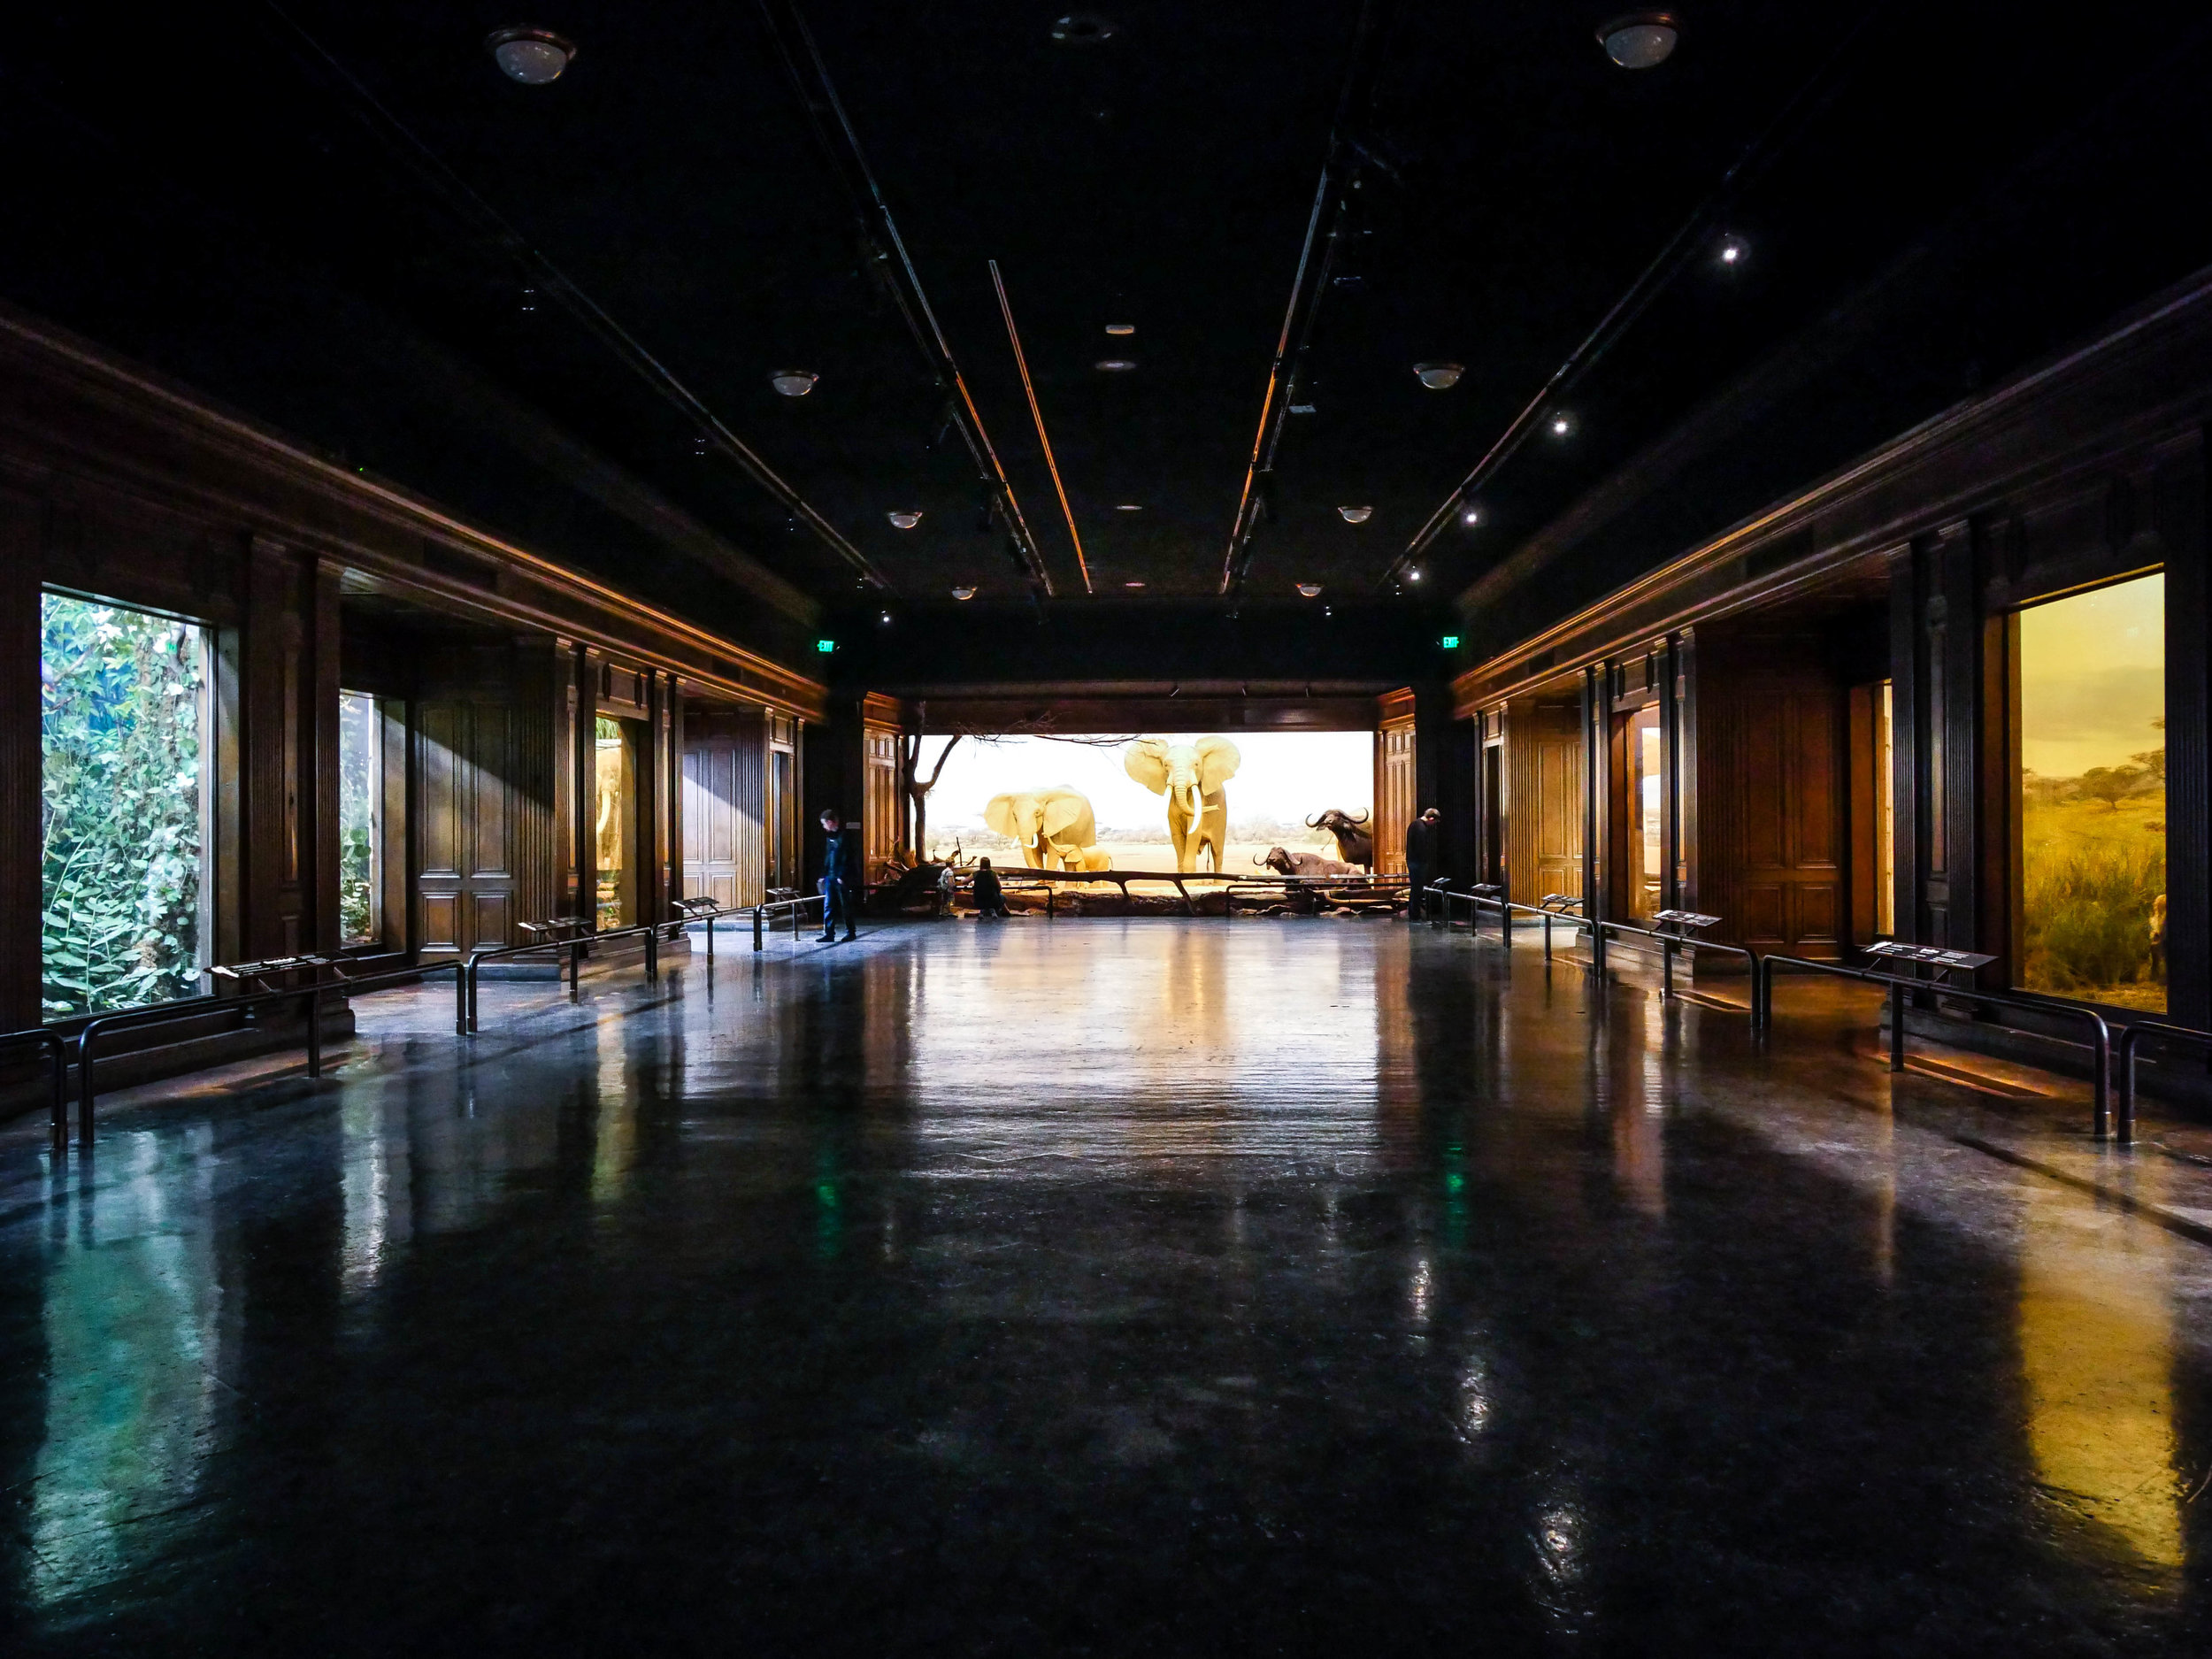 The African Mammal Hall